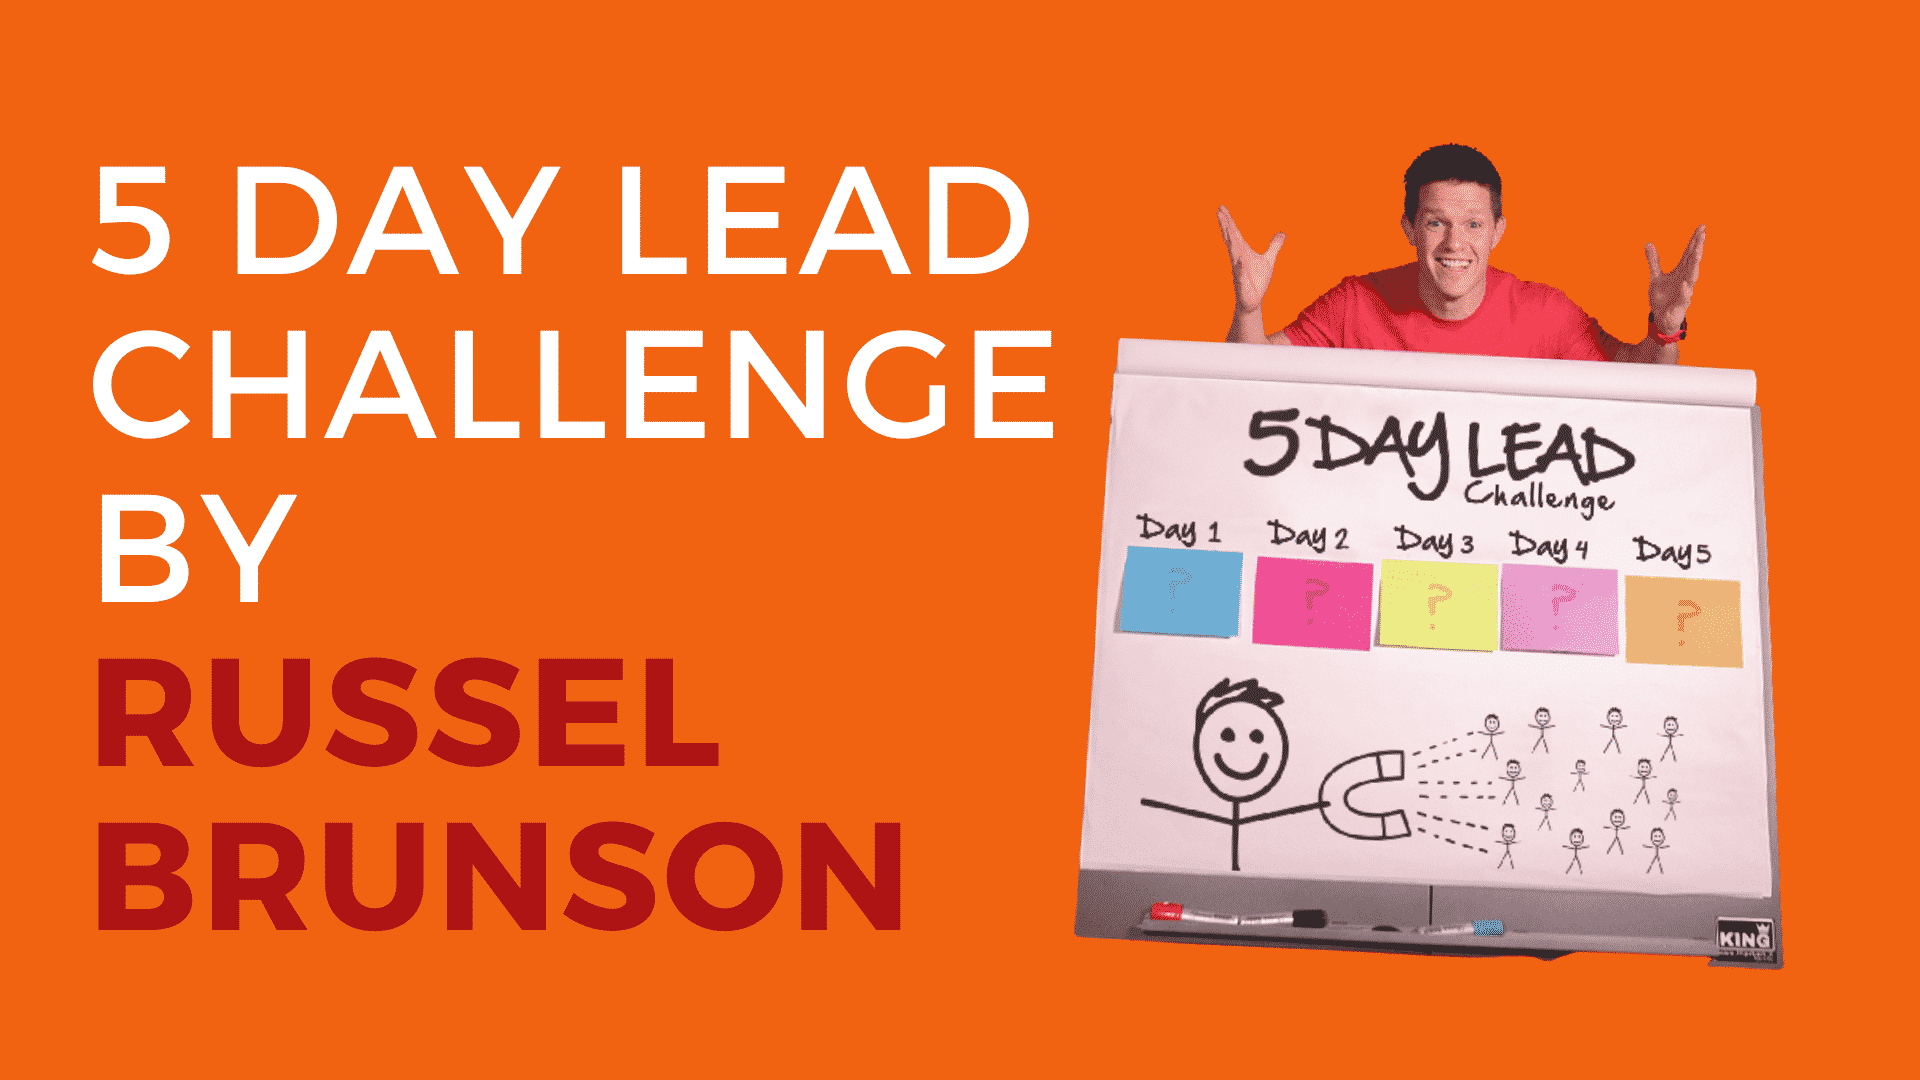 5 Day Lead Challenge by Russell Brunson